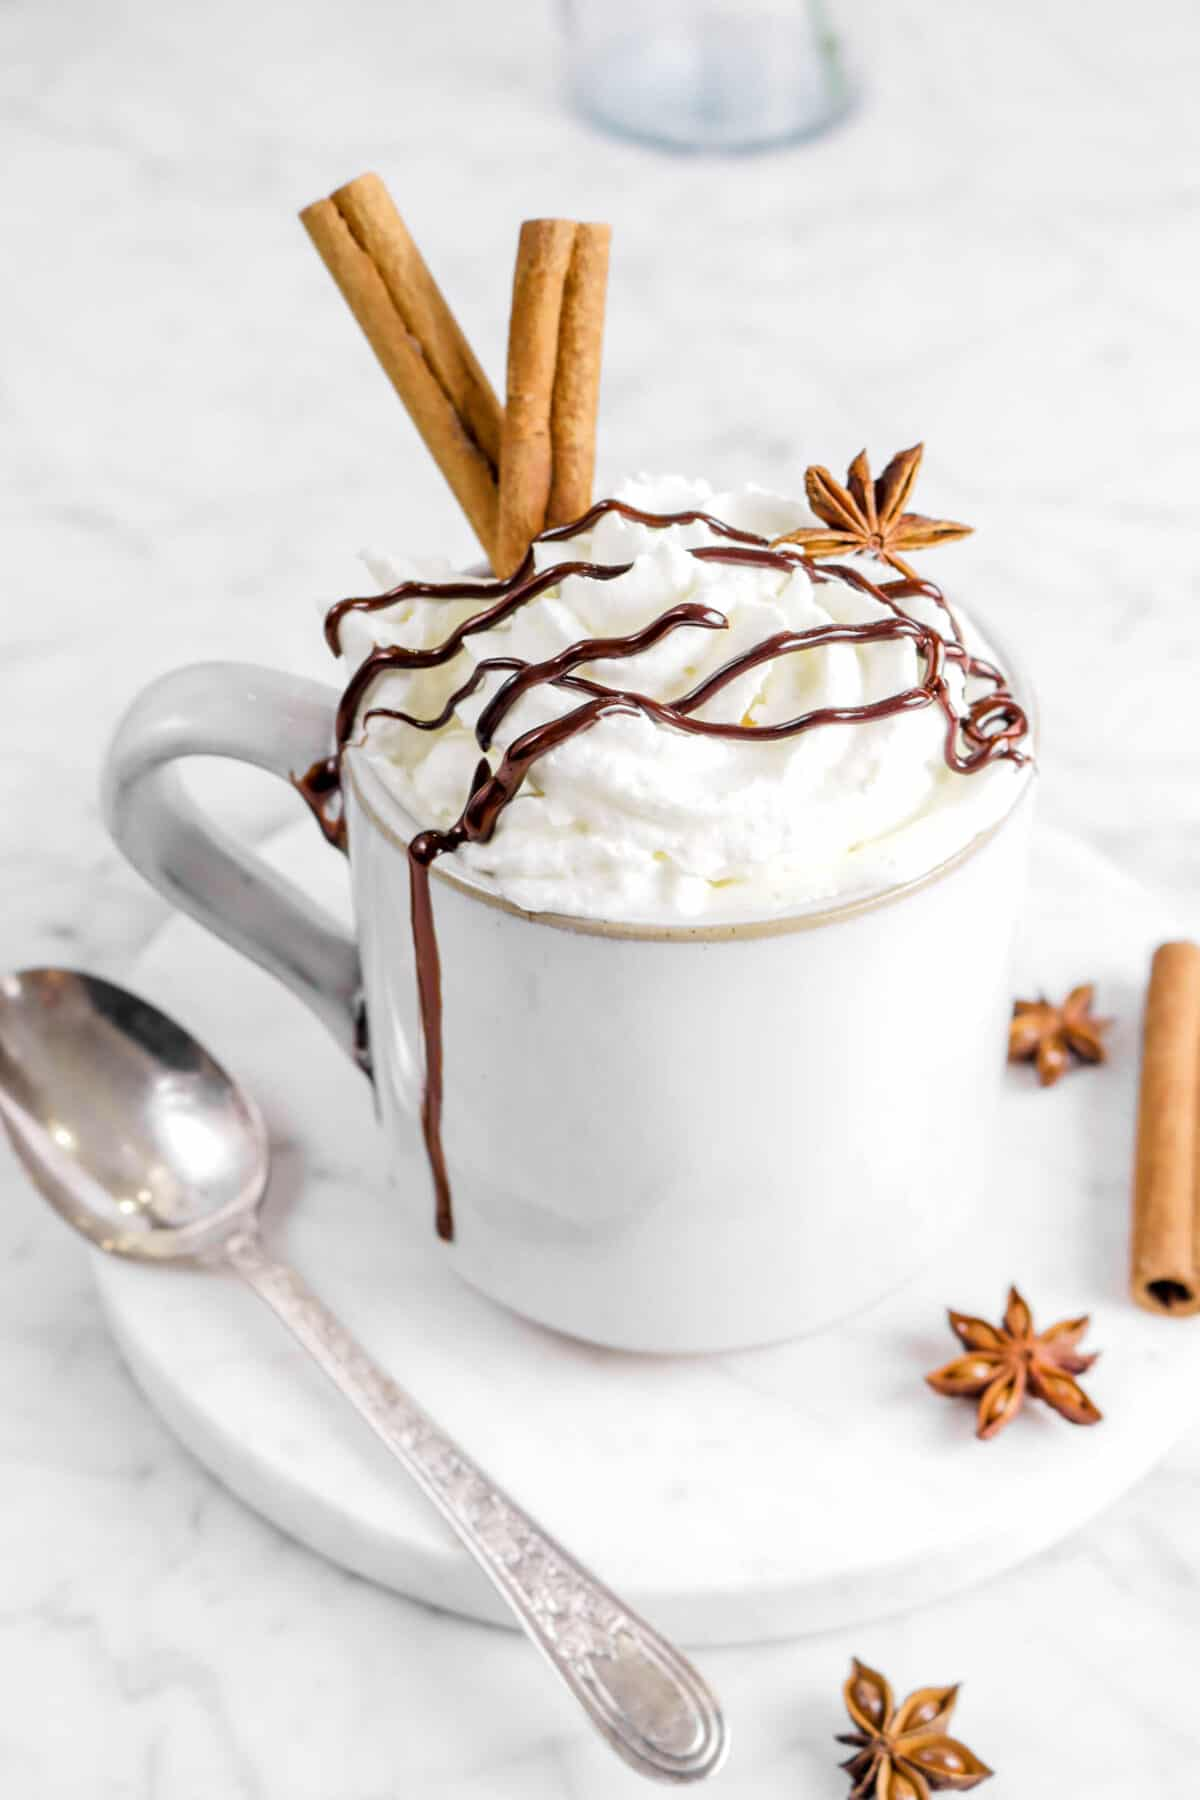 gingerbread mug cake on marble plate with spoon, cinnamon sticks, and star anise